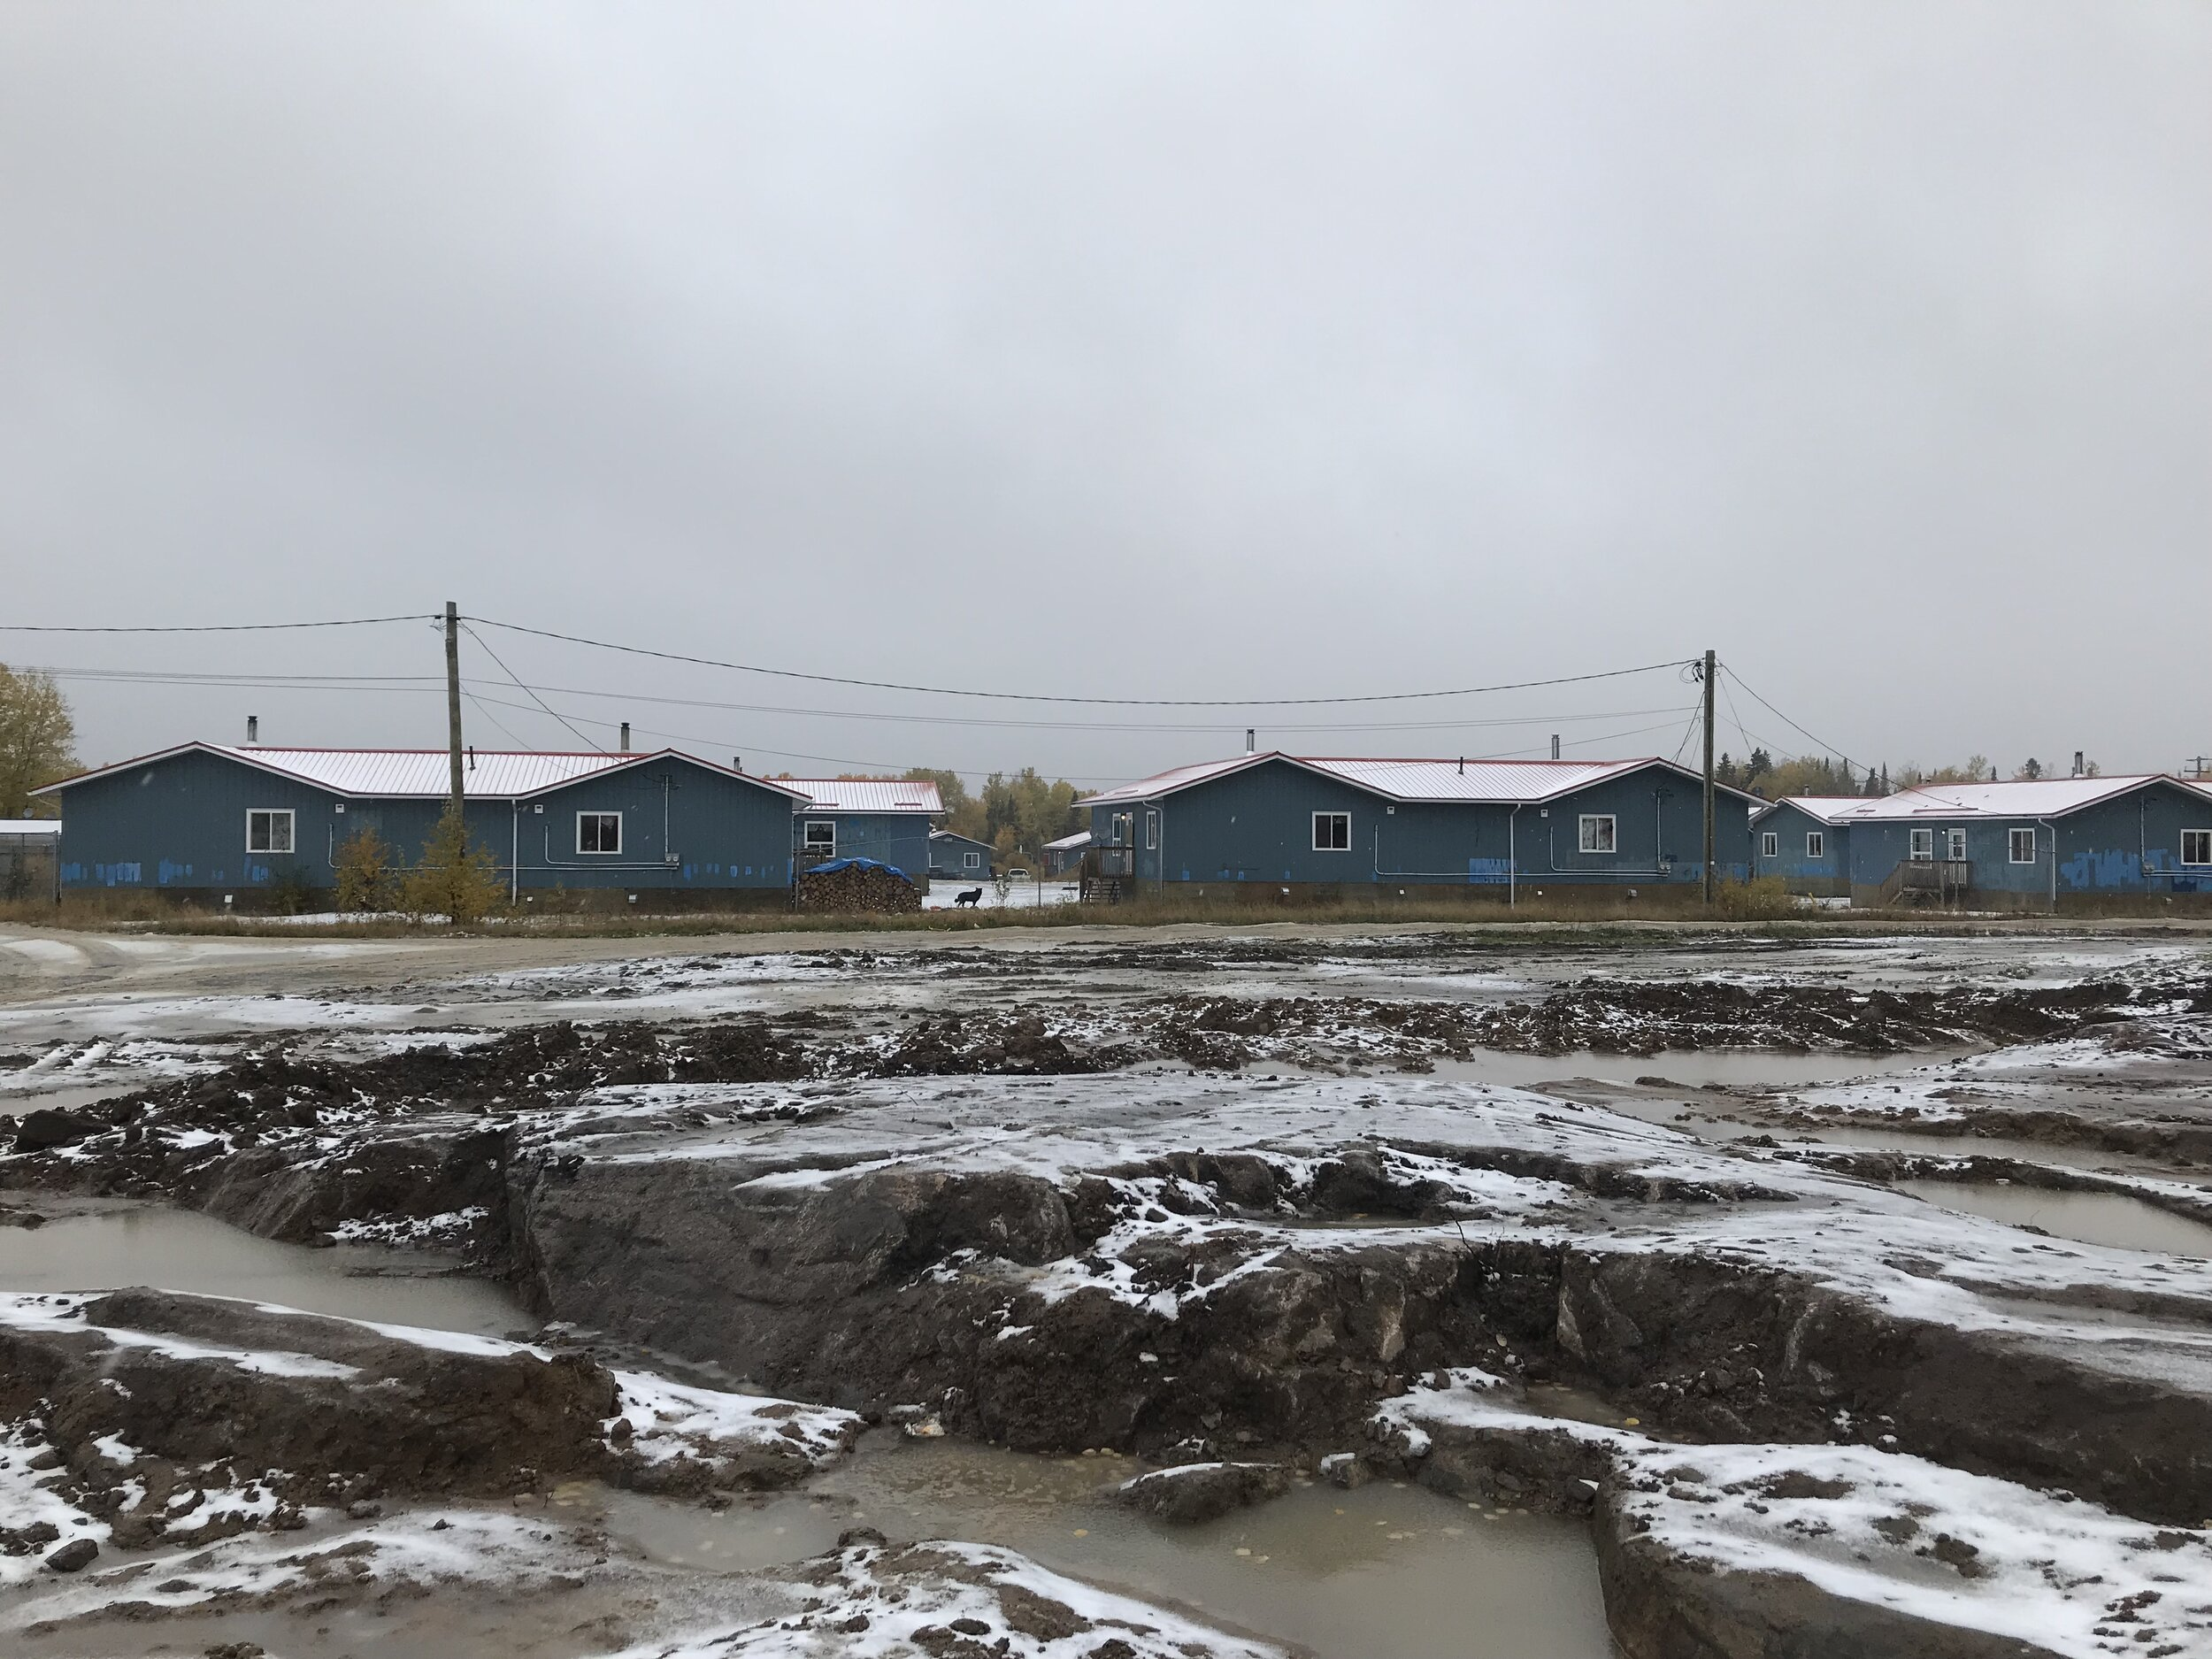 The portables for the temporary school, these are now homes.